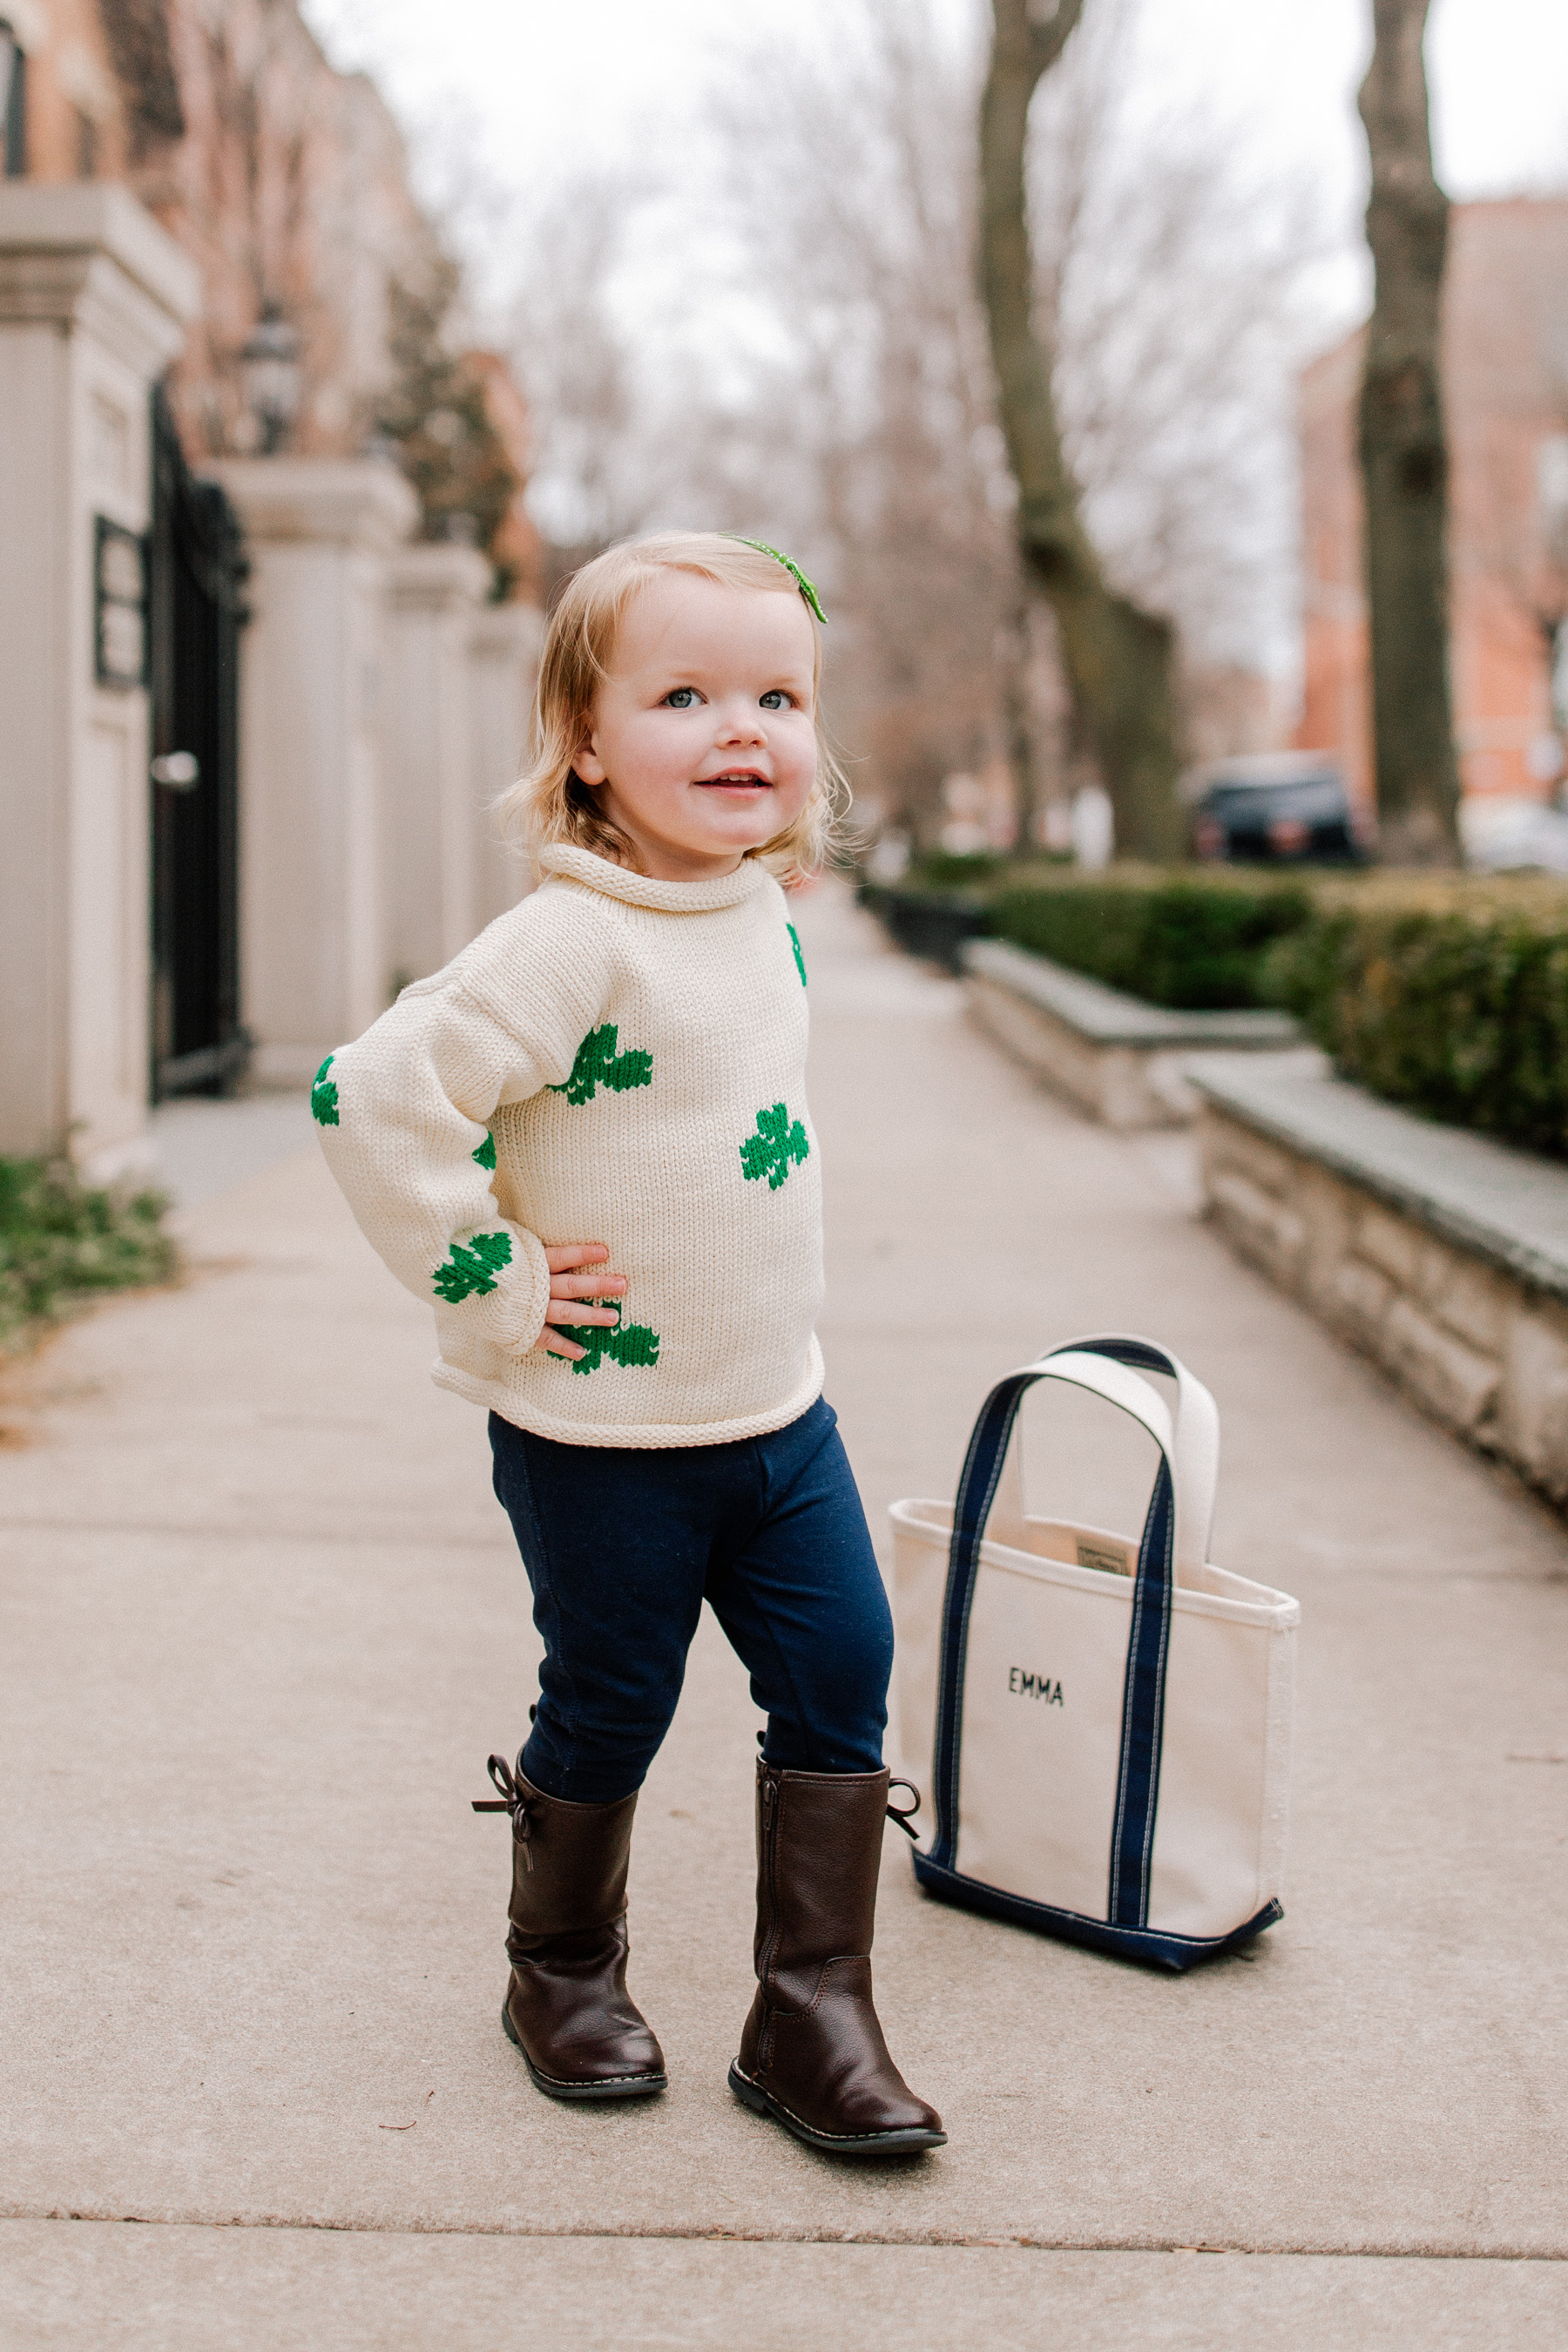 Emma's Outfit: Claver Shamrock Sweater / L.L. Bean Tote c/o / Gap Kids Jeggings and Boots / Little Makes Big Bow